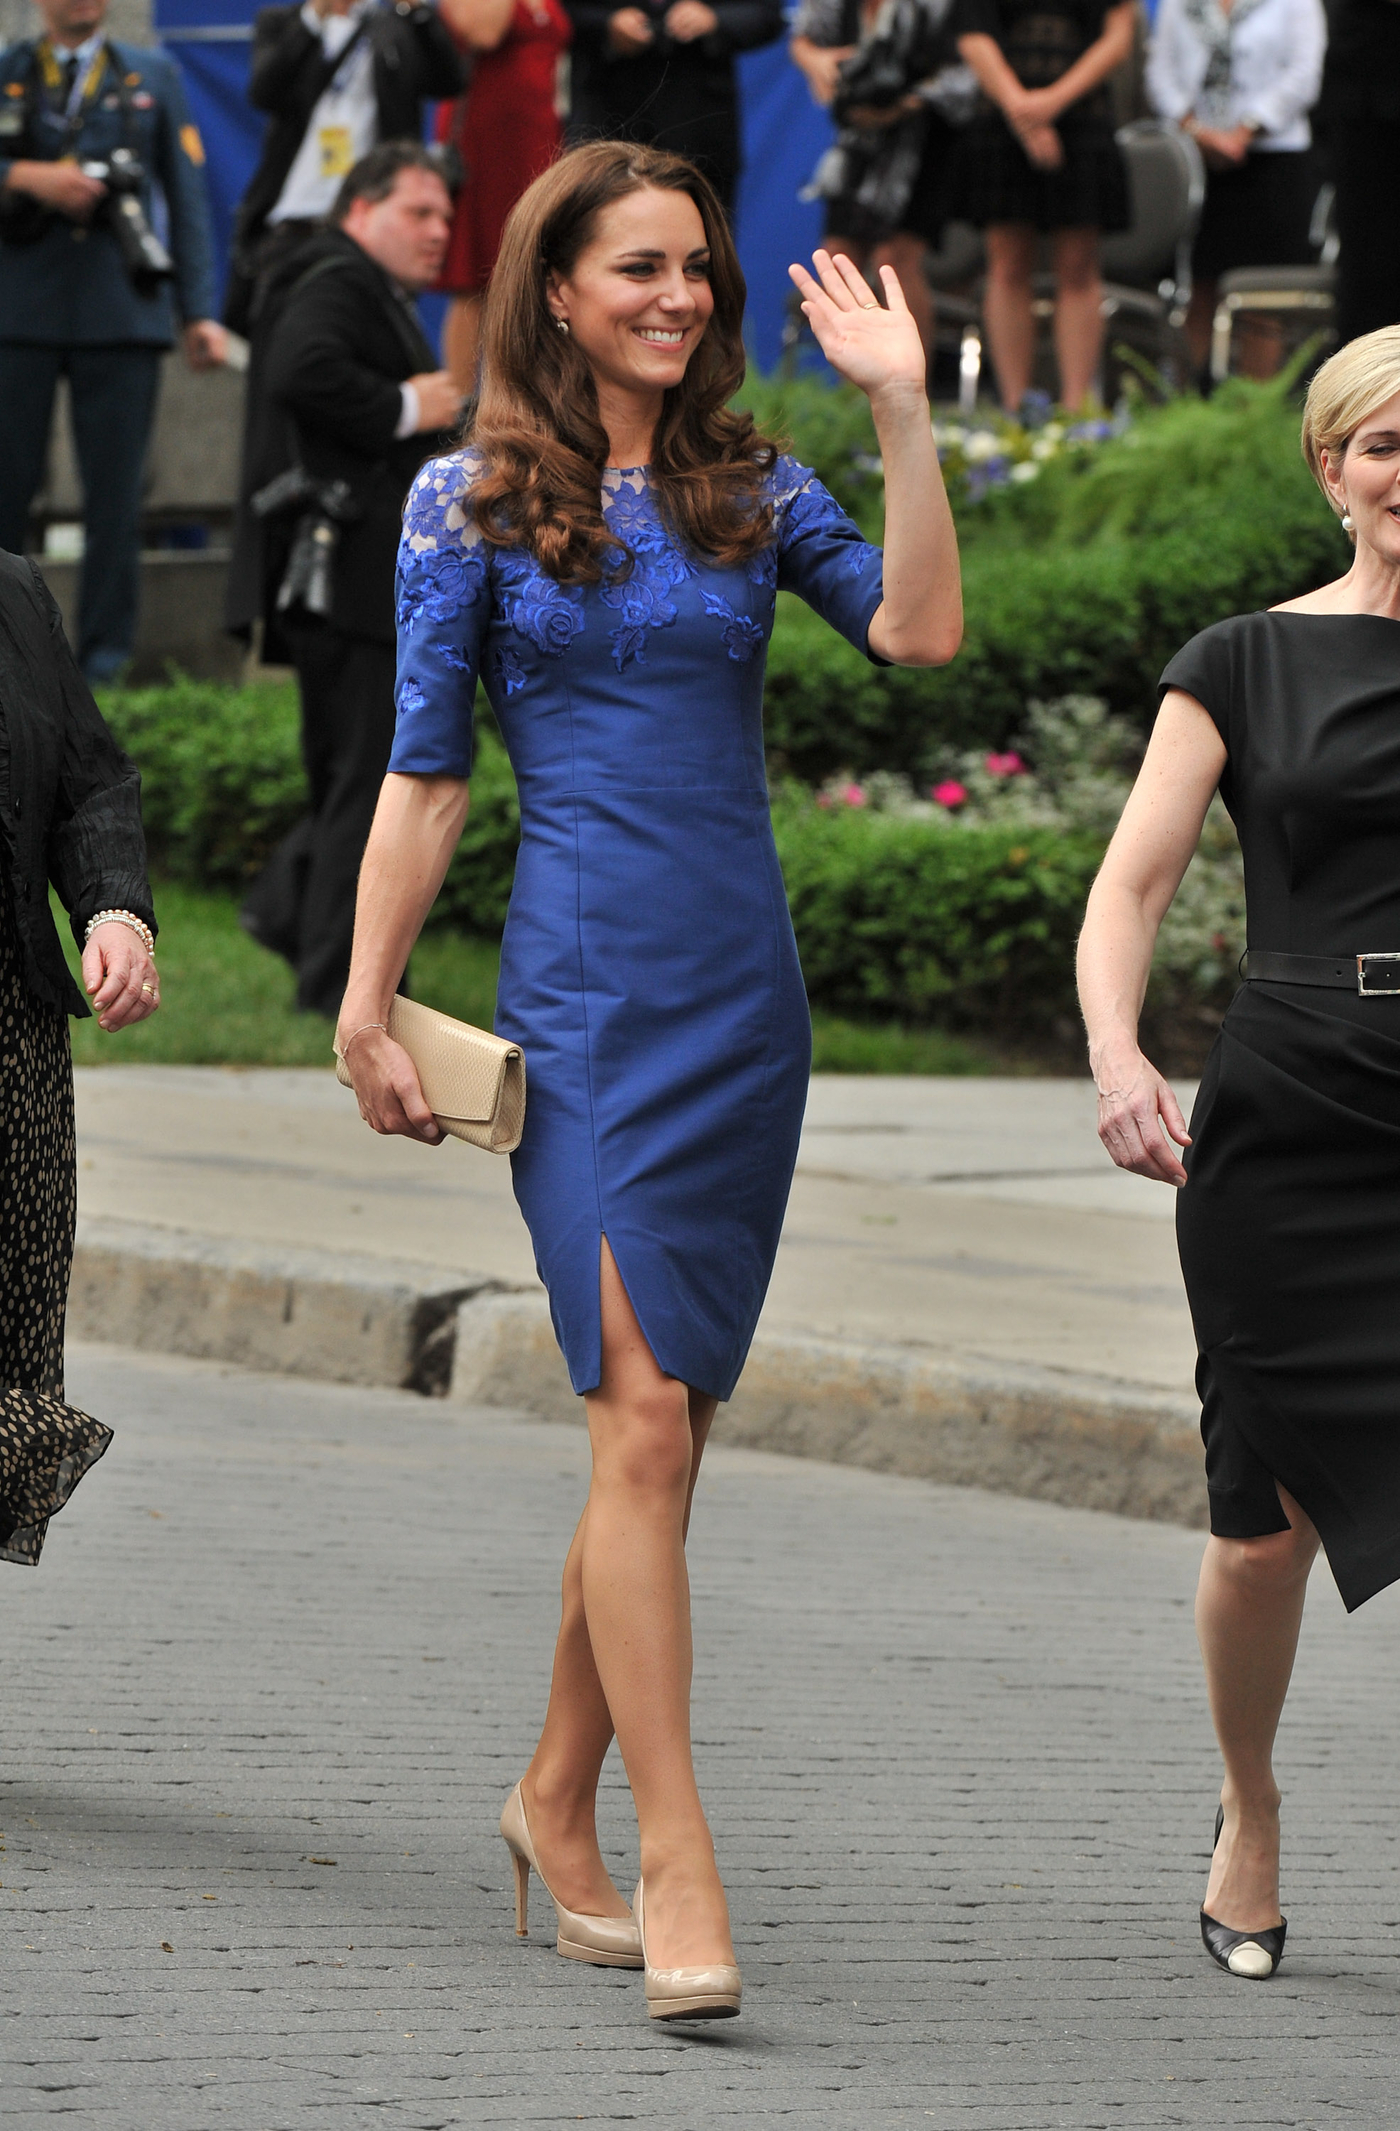 Kate Middleton In Blue Dress At Freedom Of The City